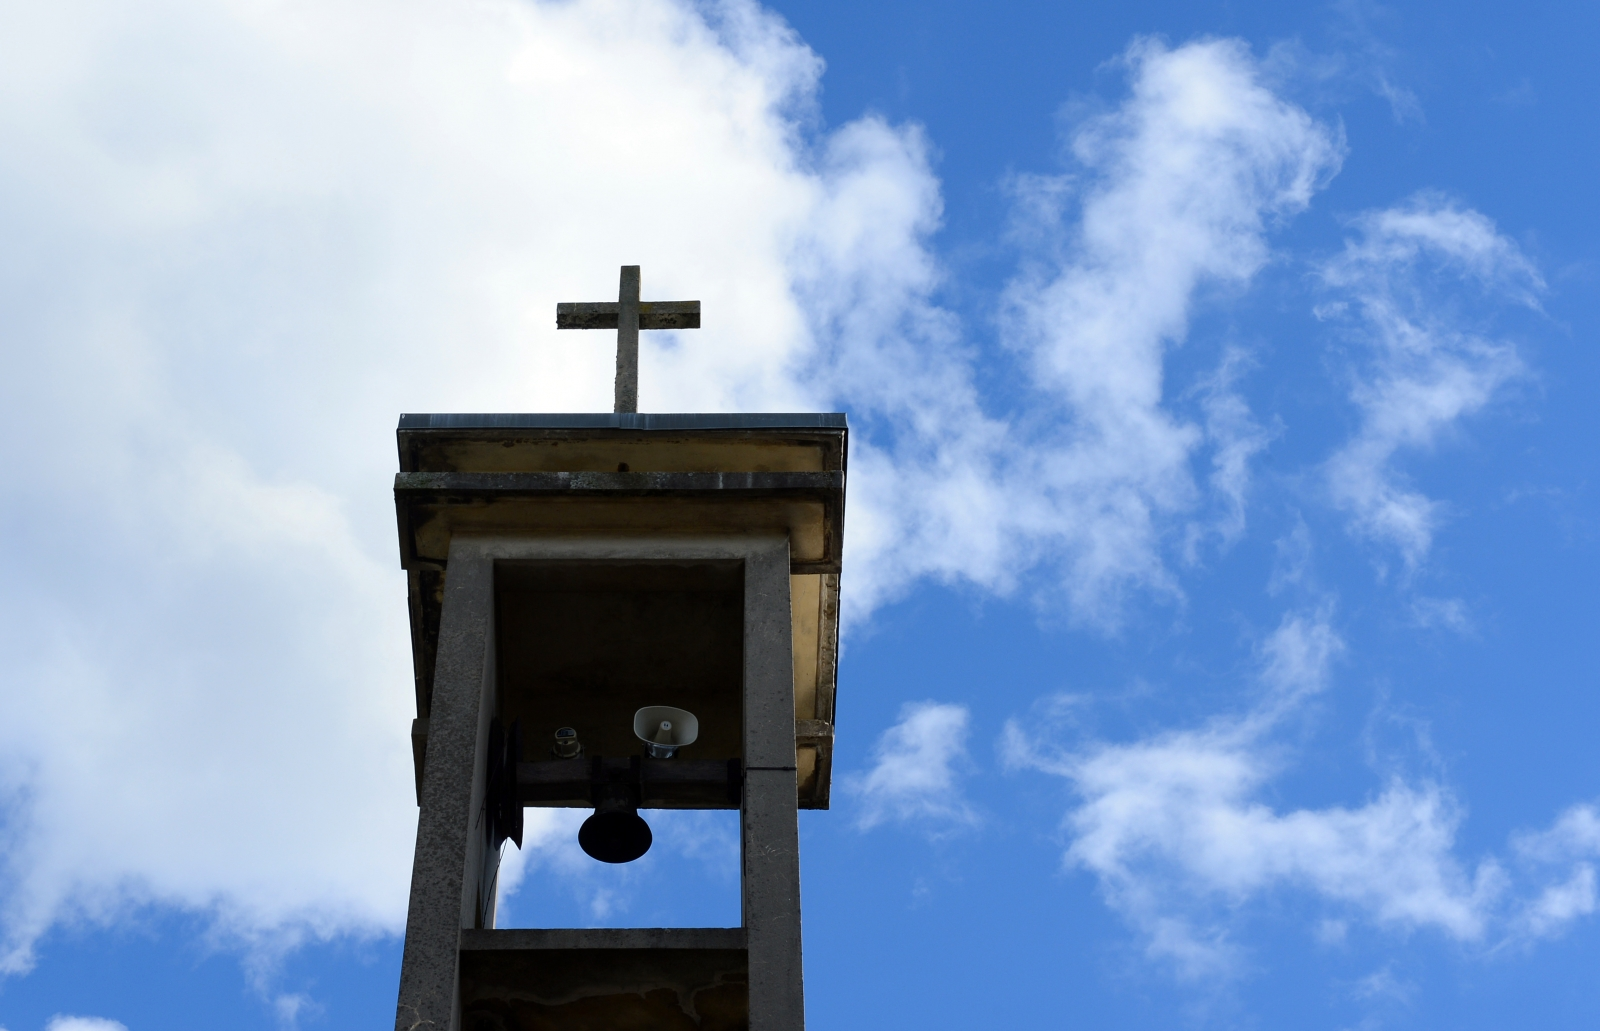 Catholic church steeple in Vierzon, central France